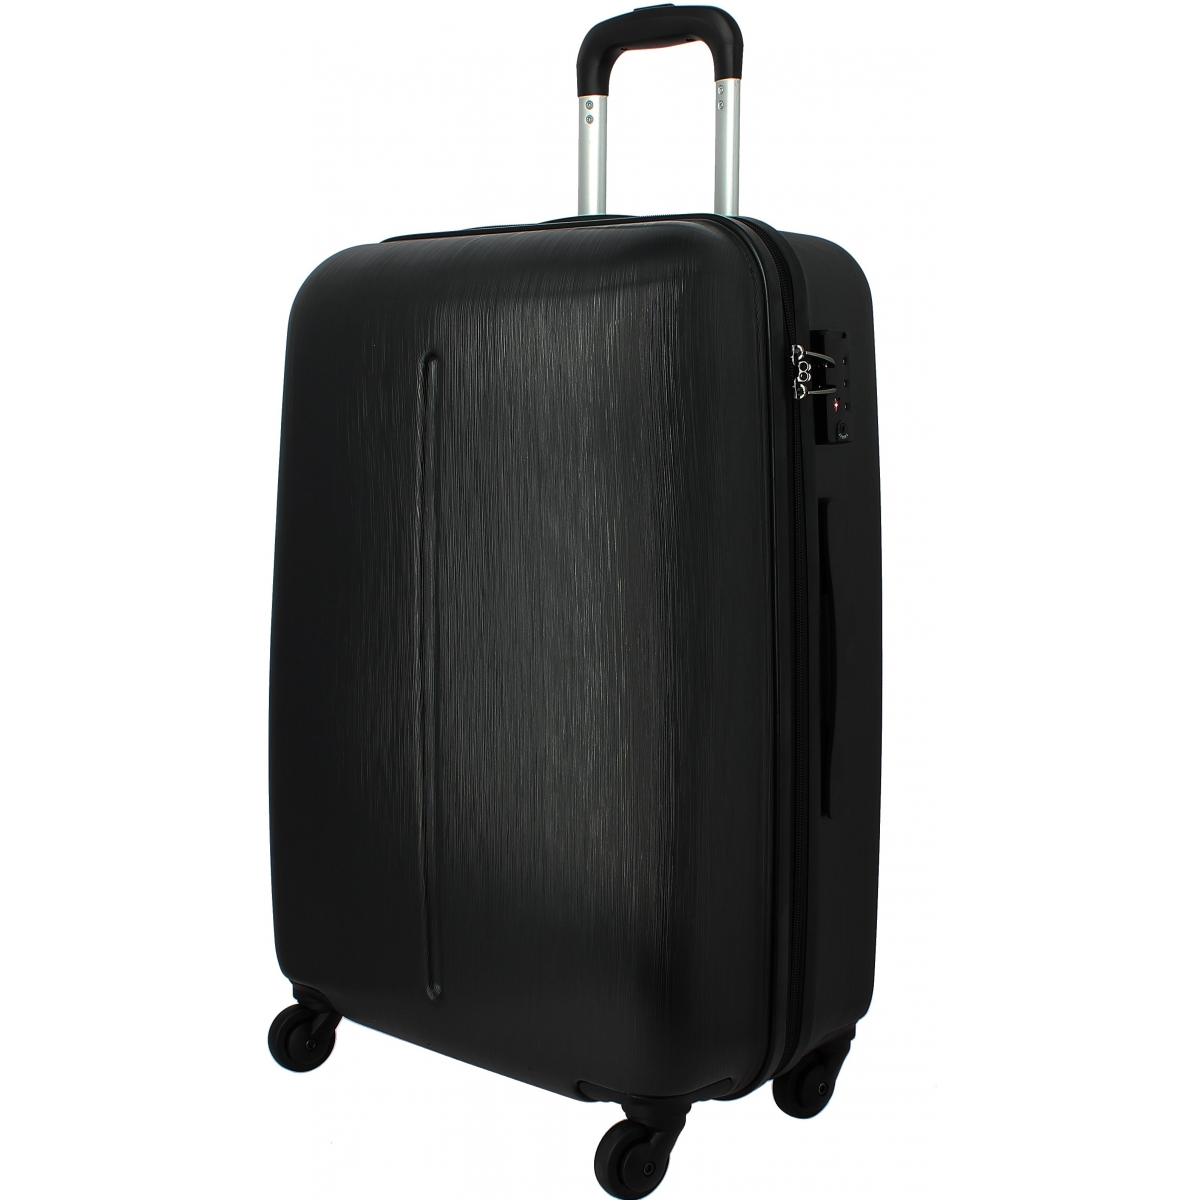 valise rigide david jones taille m 65 cm tsa ba10141m. Black Bedroom Furniture Sets. Home Design Ideas